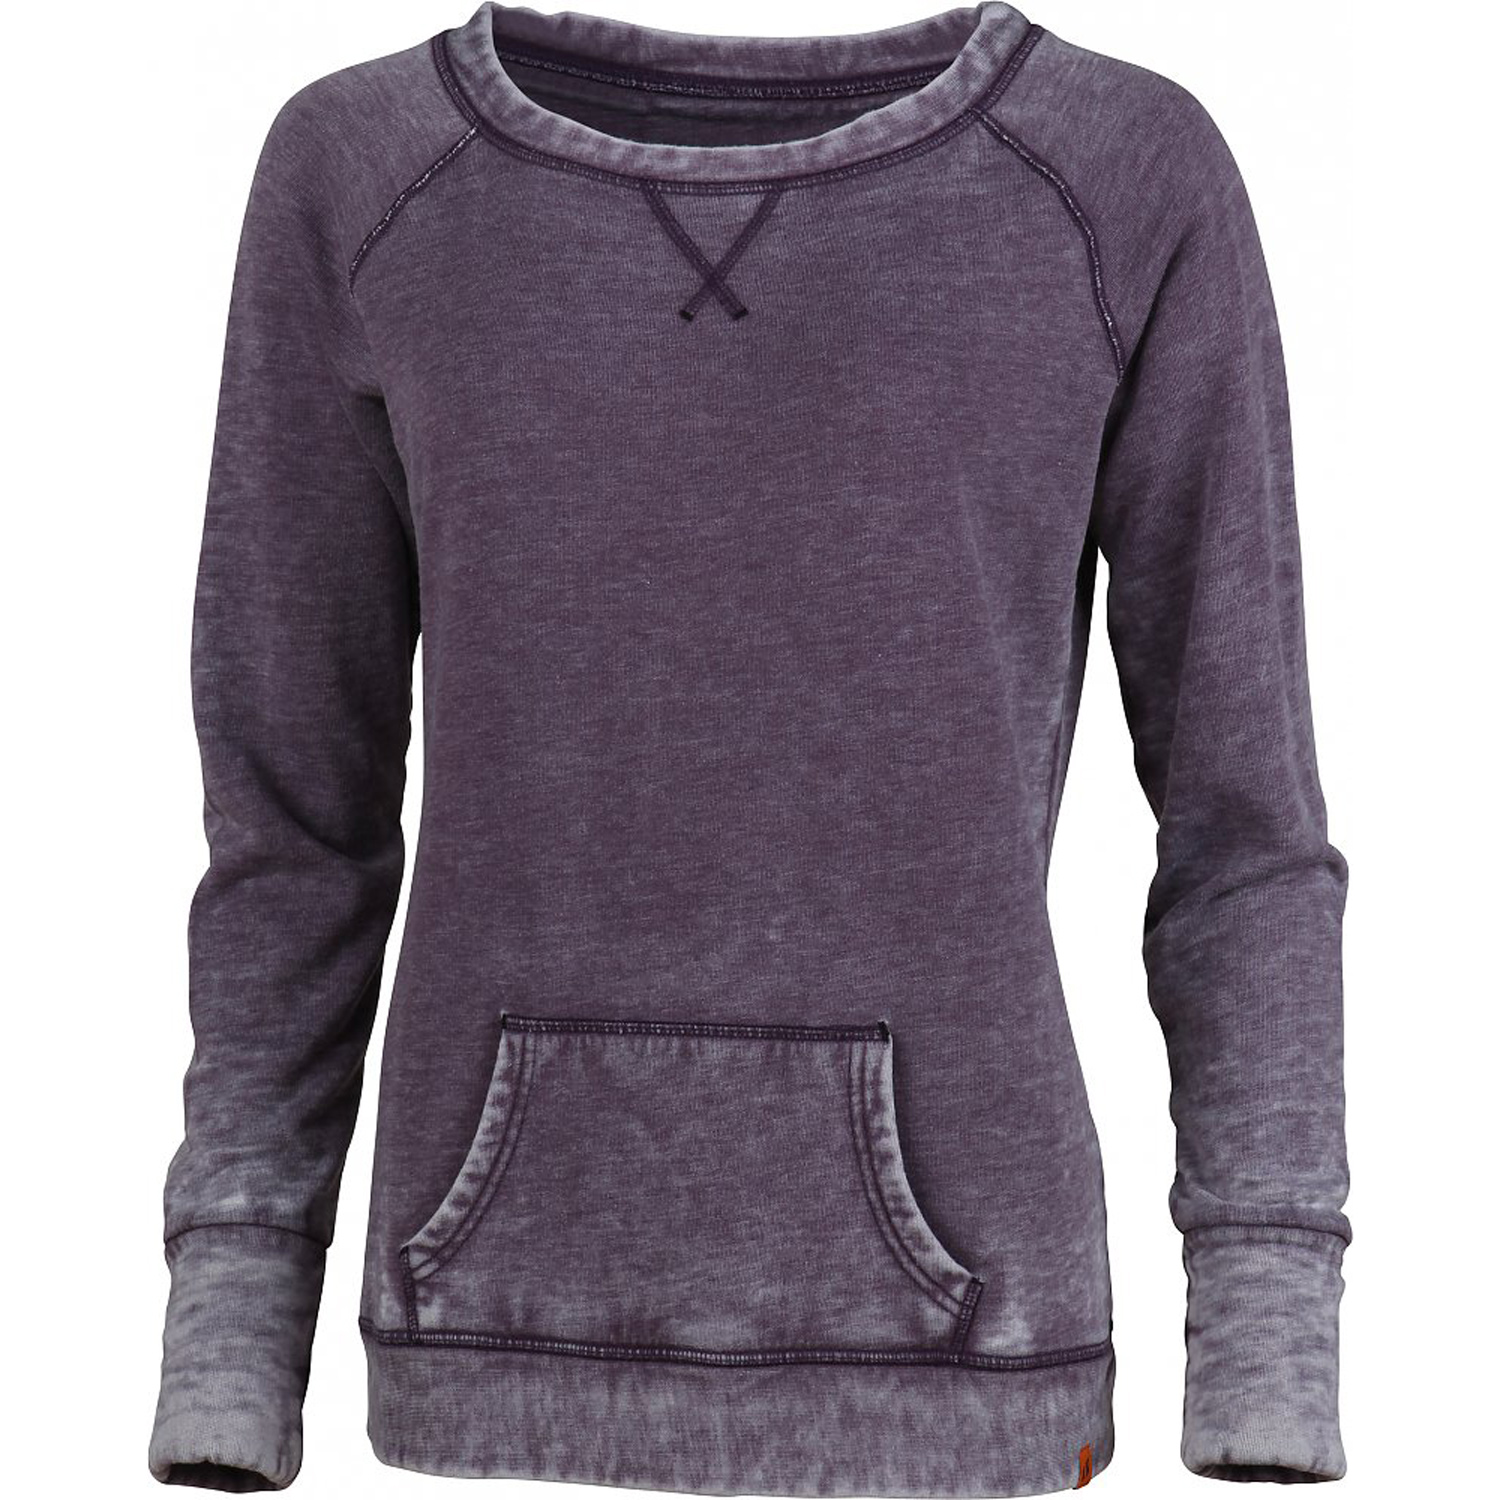 sports shoes ade6e d5224 York Isabell - Damen Sweatshirt Pullover - 136316-4007 lila